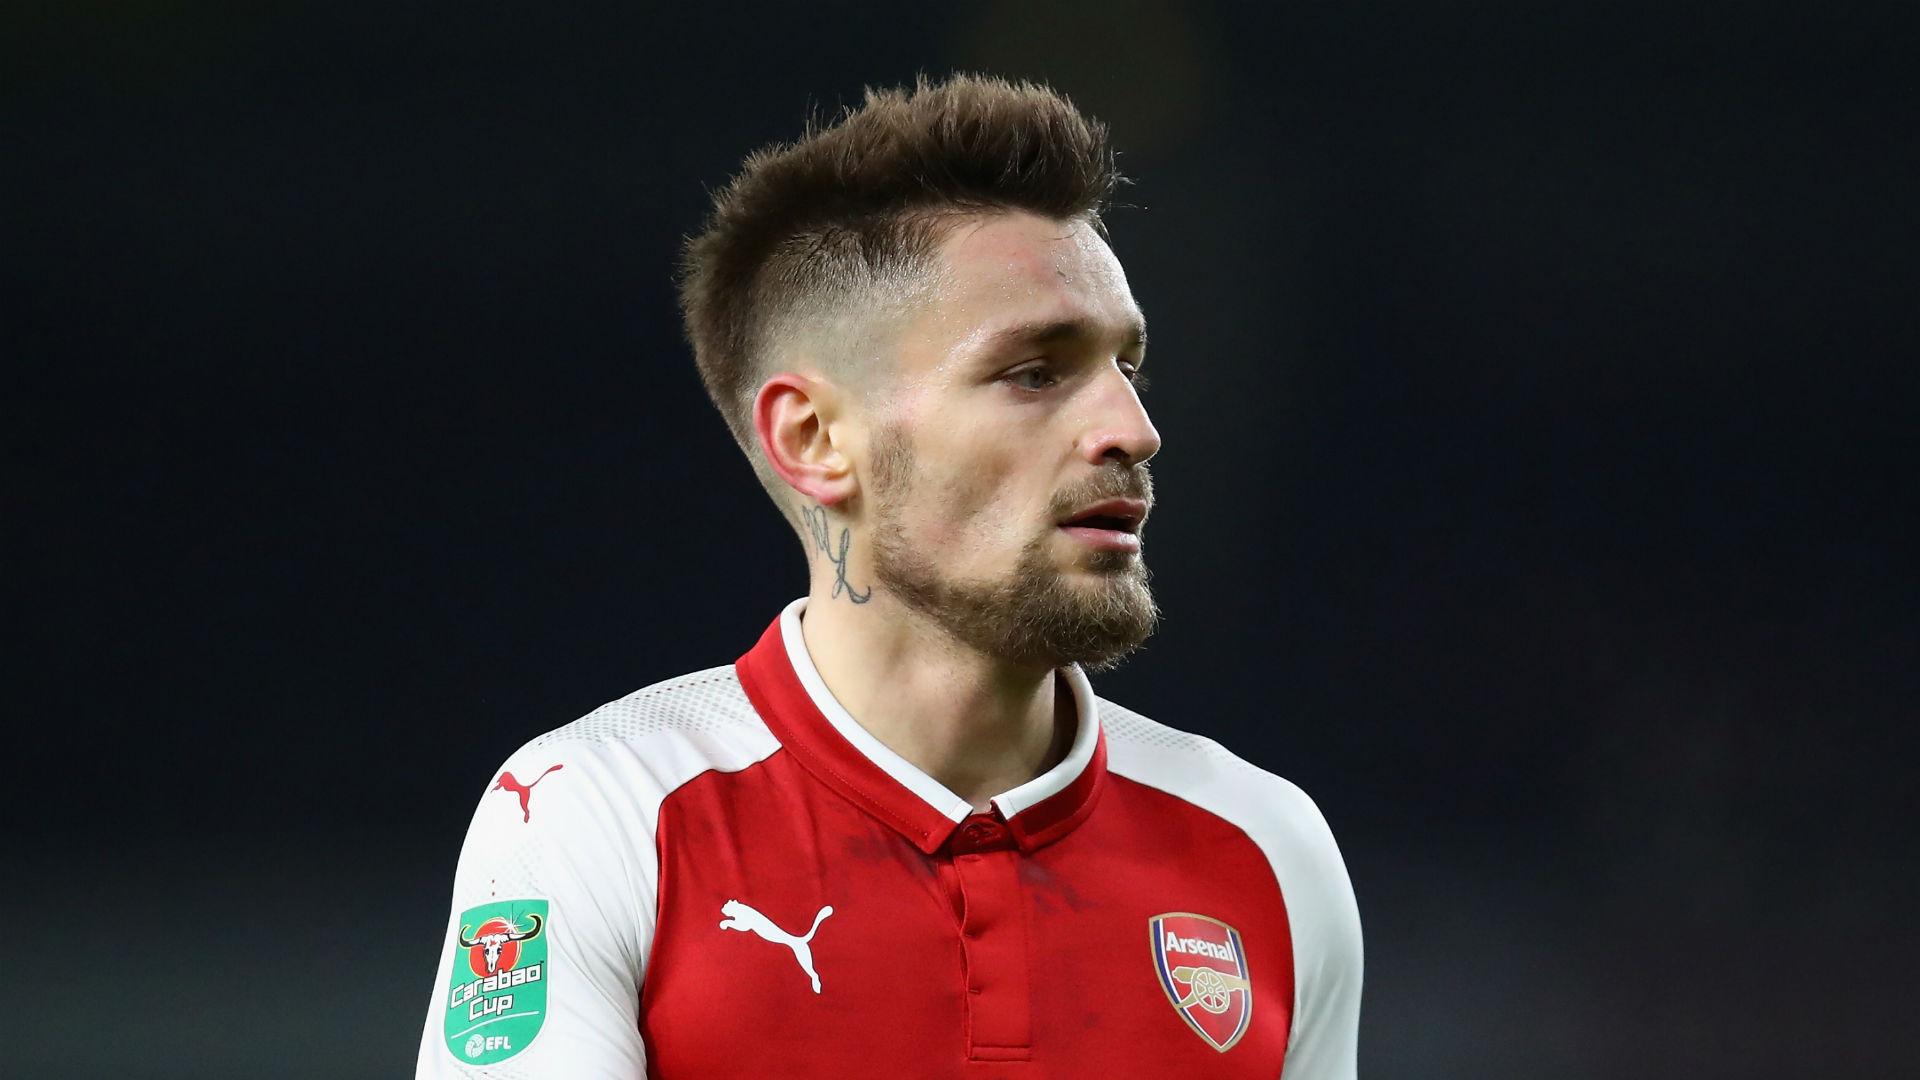 Arsenal Confirm Giroud & Debuchy Have Left The Club